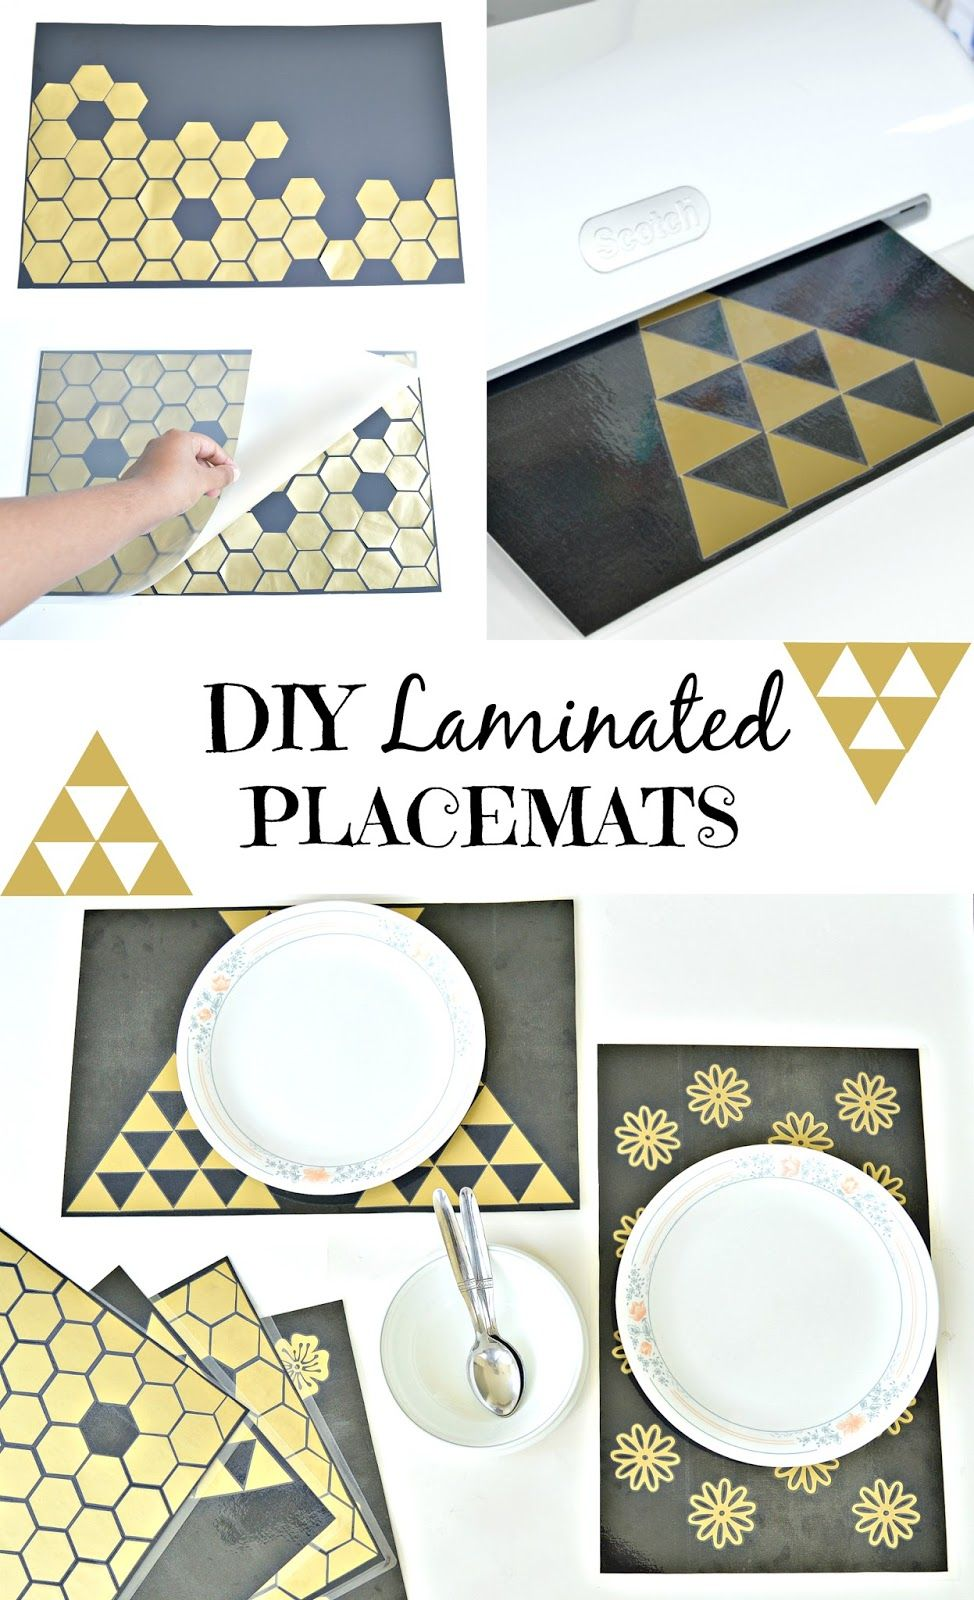 Diy Laminated Placemats Diy Placemats Laminating Crafts Placemats